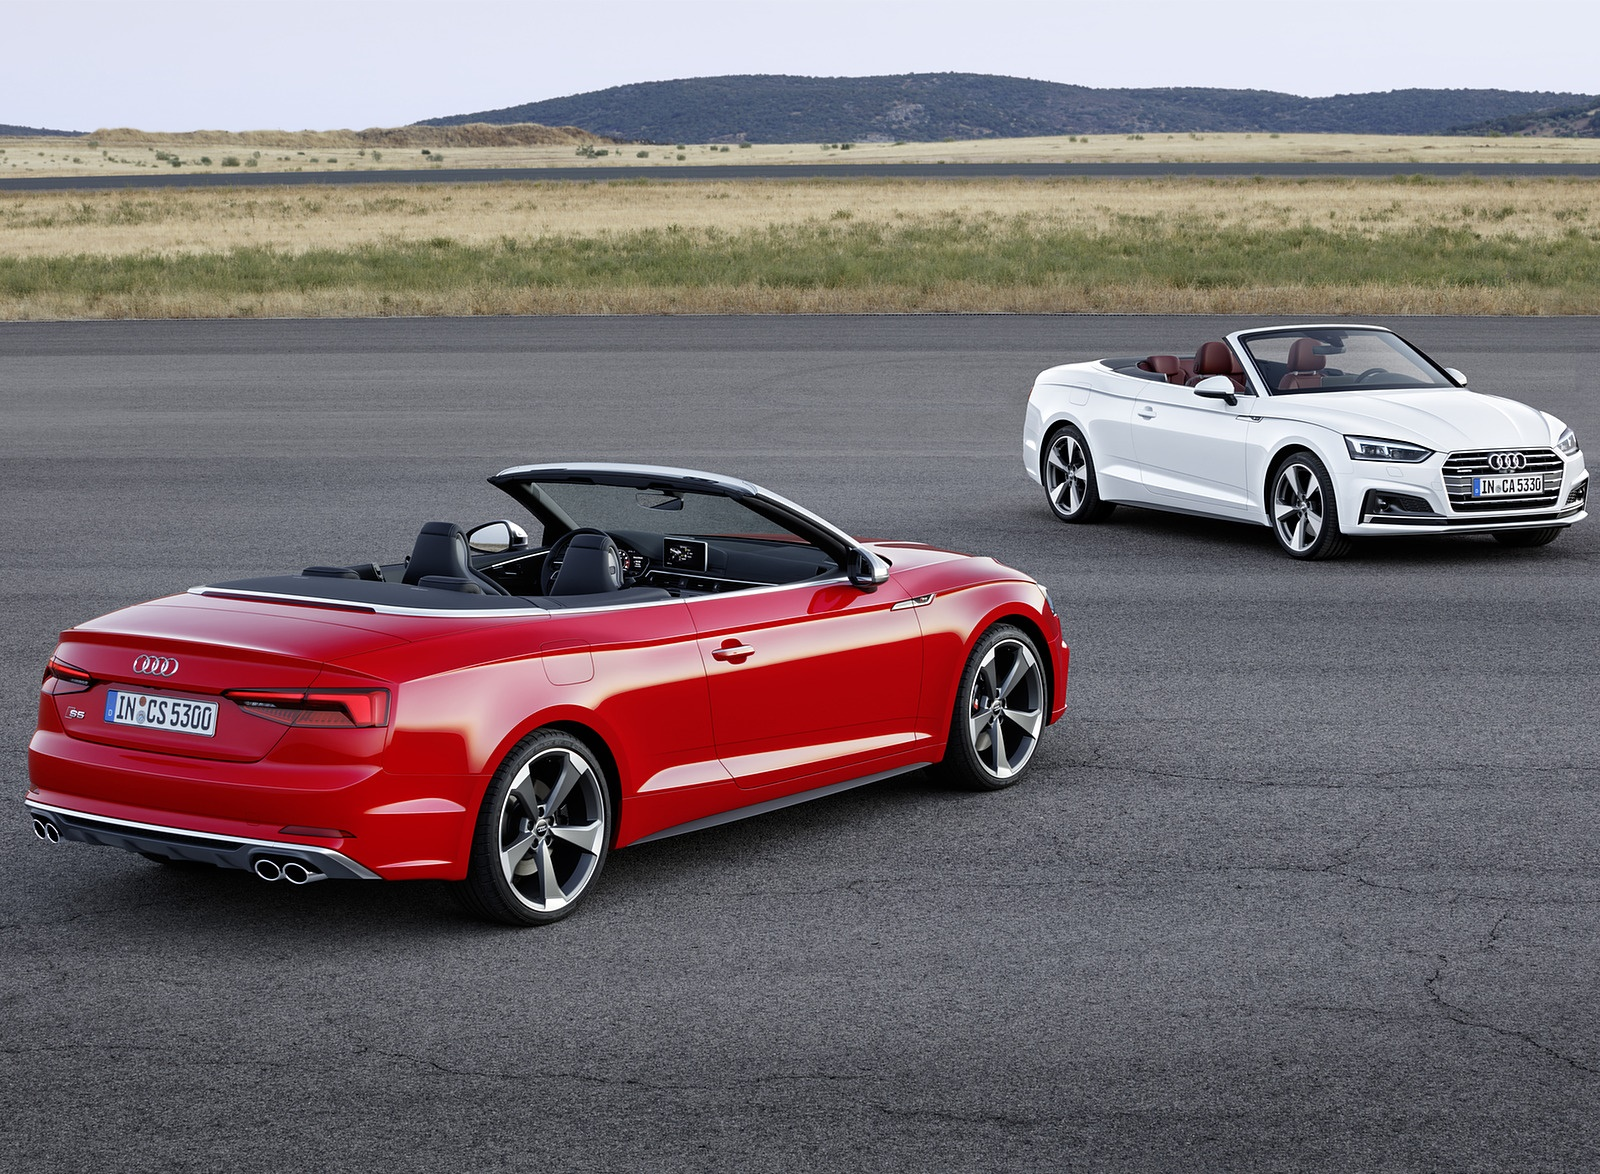 2018 A5 Cabrio and 2018 Audi S5 Cabriolet (Color: Misano Red) Wallpaper (14)